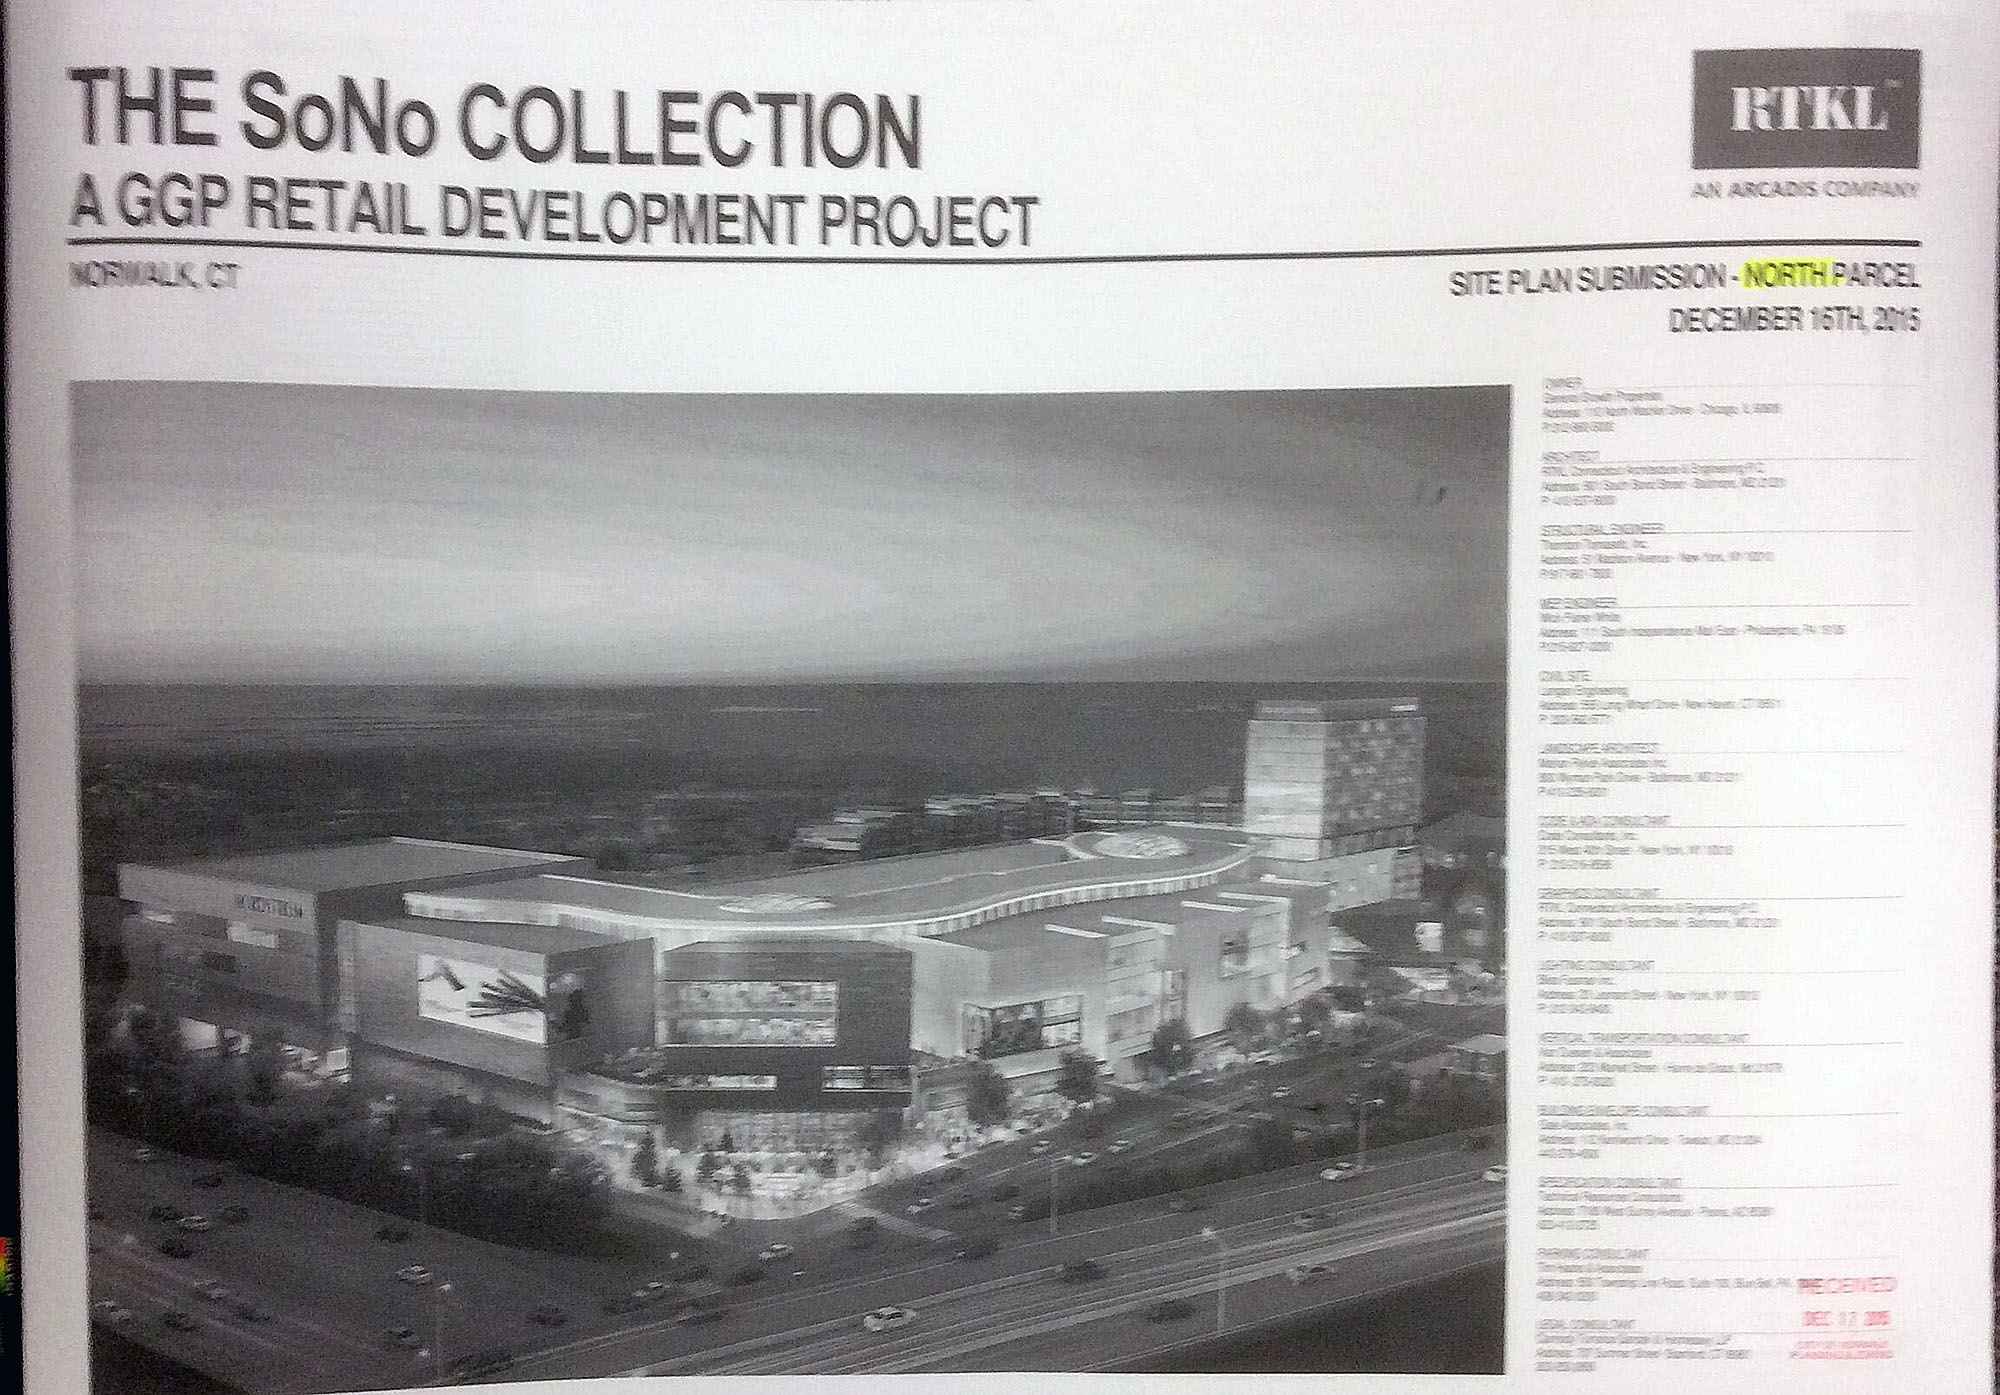 Ggp S Sono Mall Application Includes Traffic Light Proposals Street Alterations Nancy On Norwalk